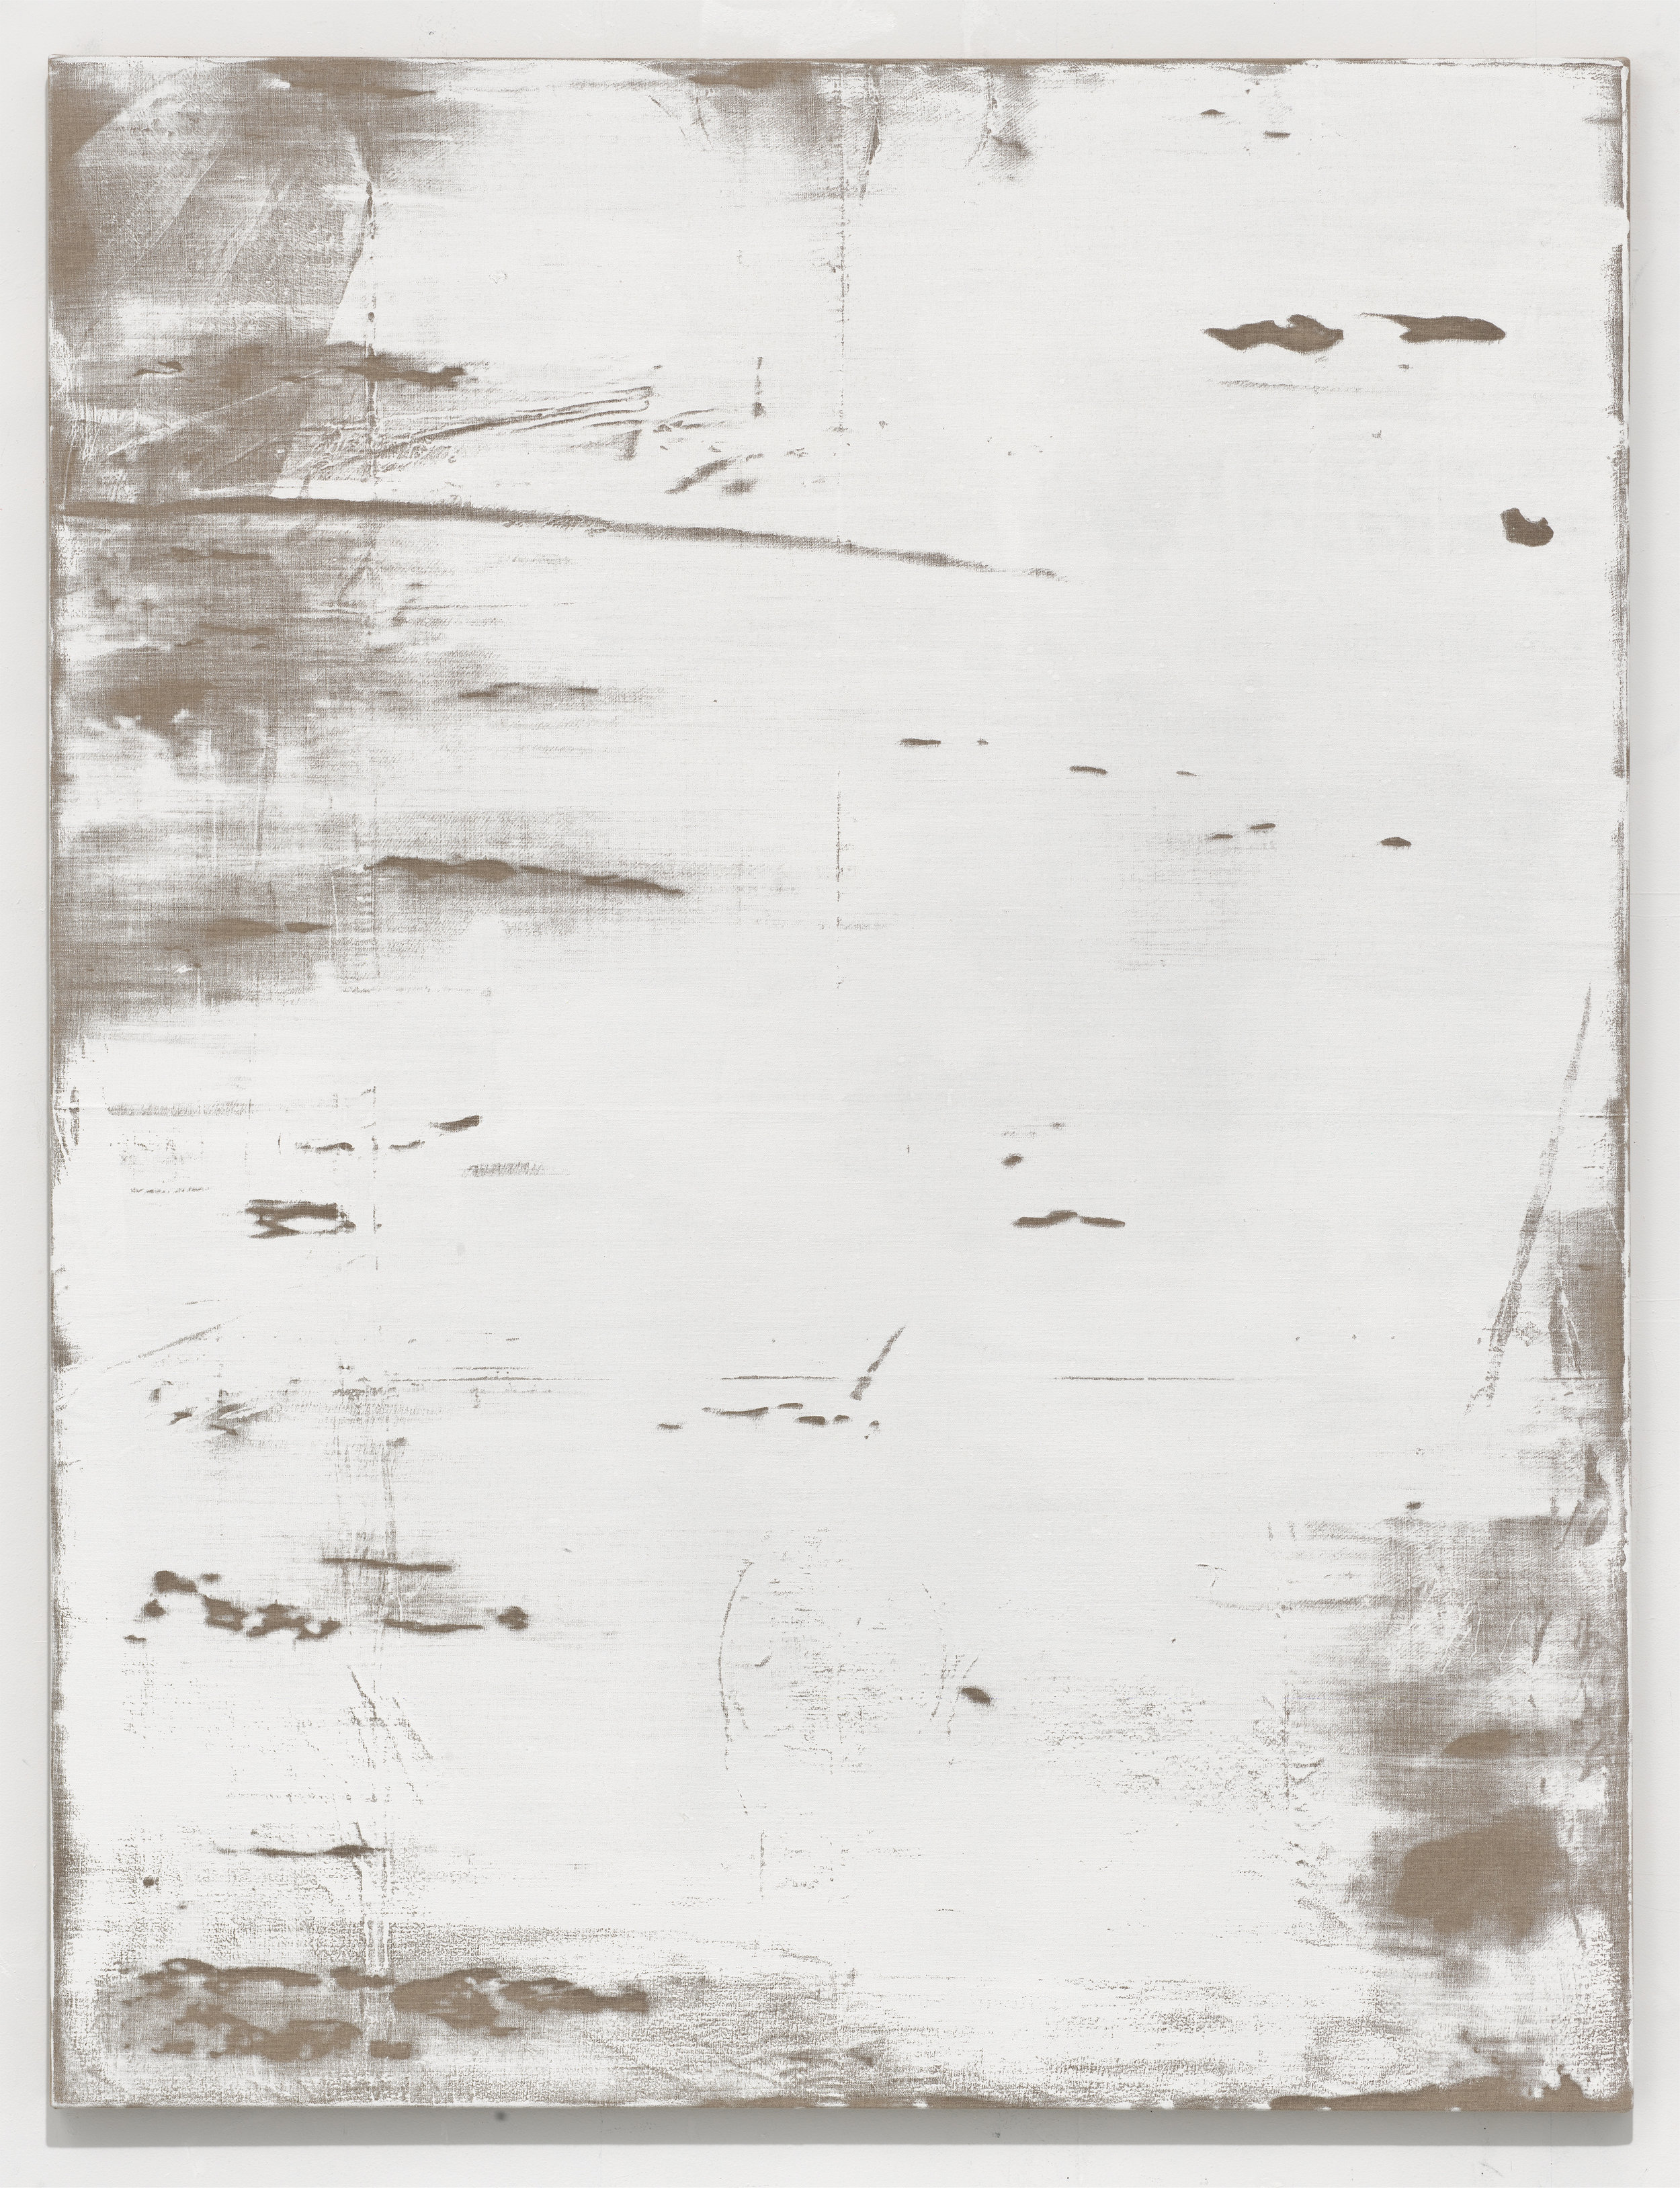 Untitled, 2013 oil on linen 196 x 151 cm - 77 1/8 x 59 1/2 inches